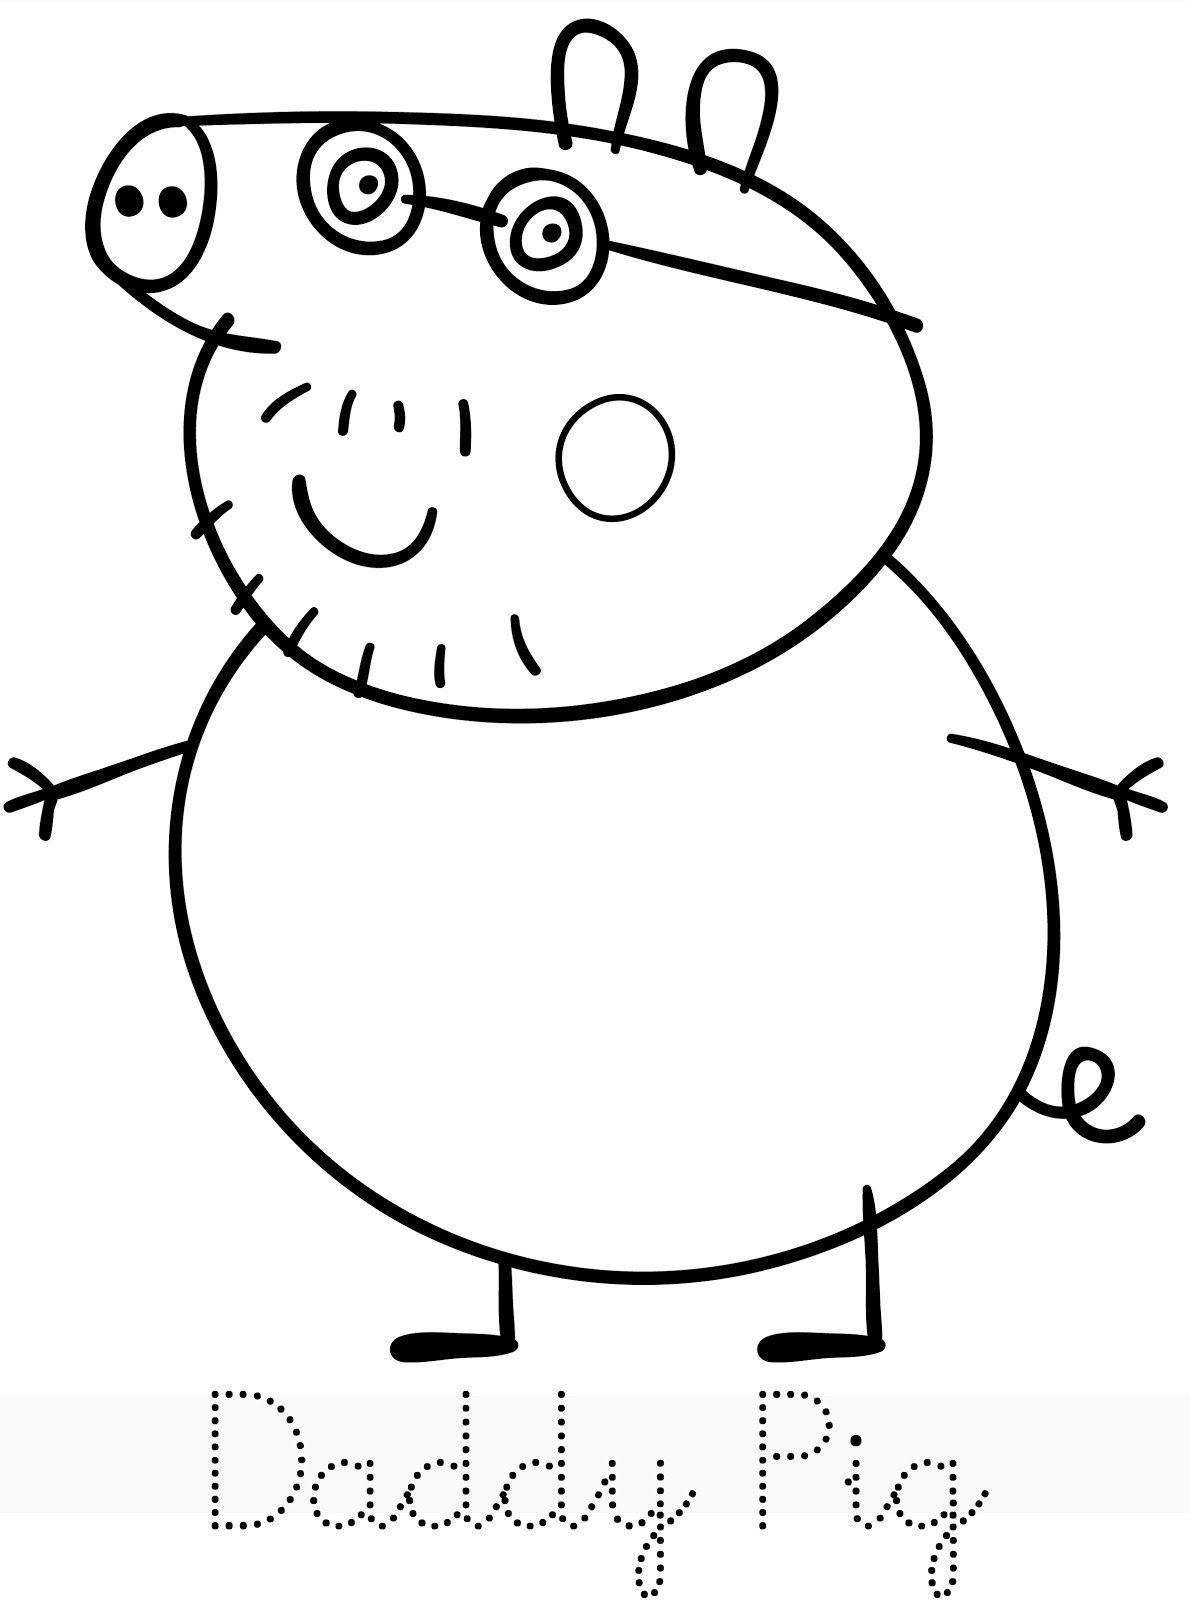 Daddy Peppa Pig Coloring Pages Peppa Pig Colouring Peppa Pig Coloring Pages Peppa Pig Pictures